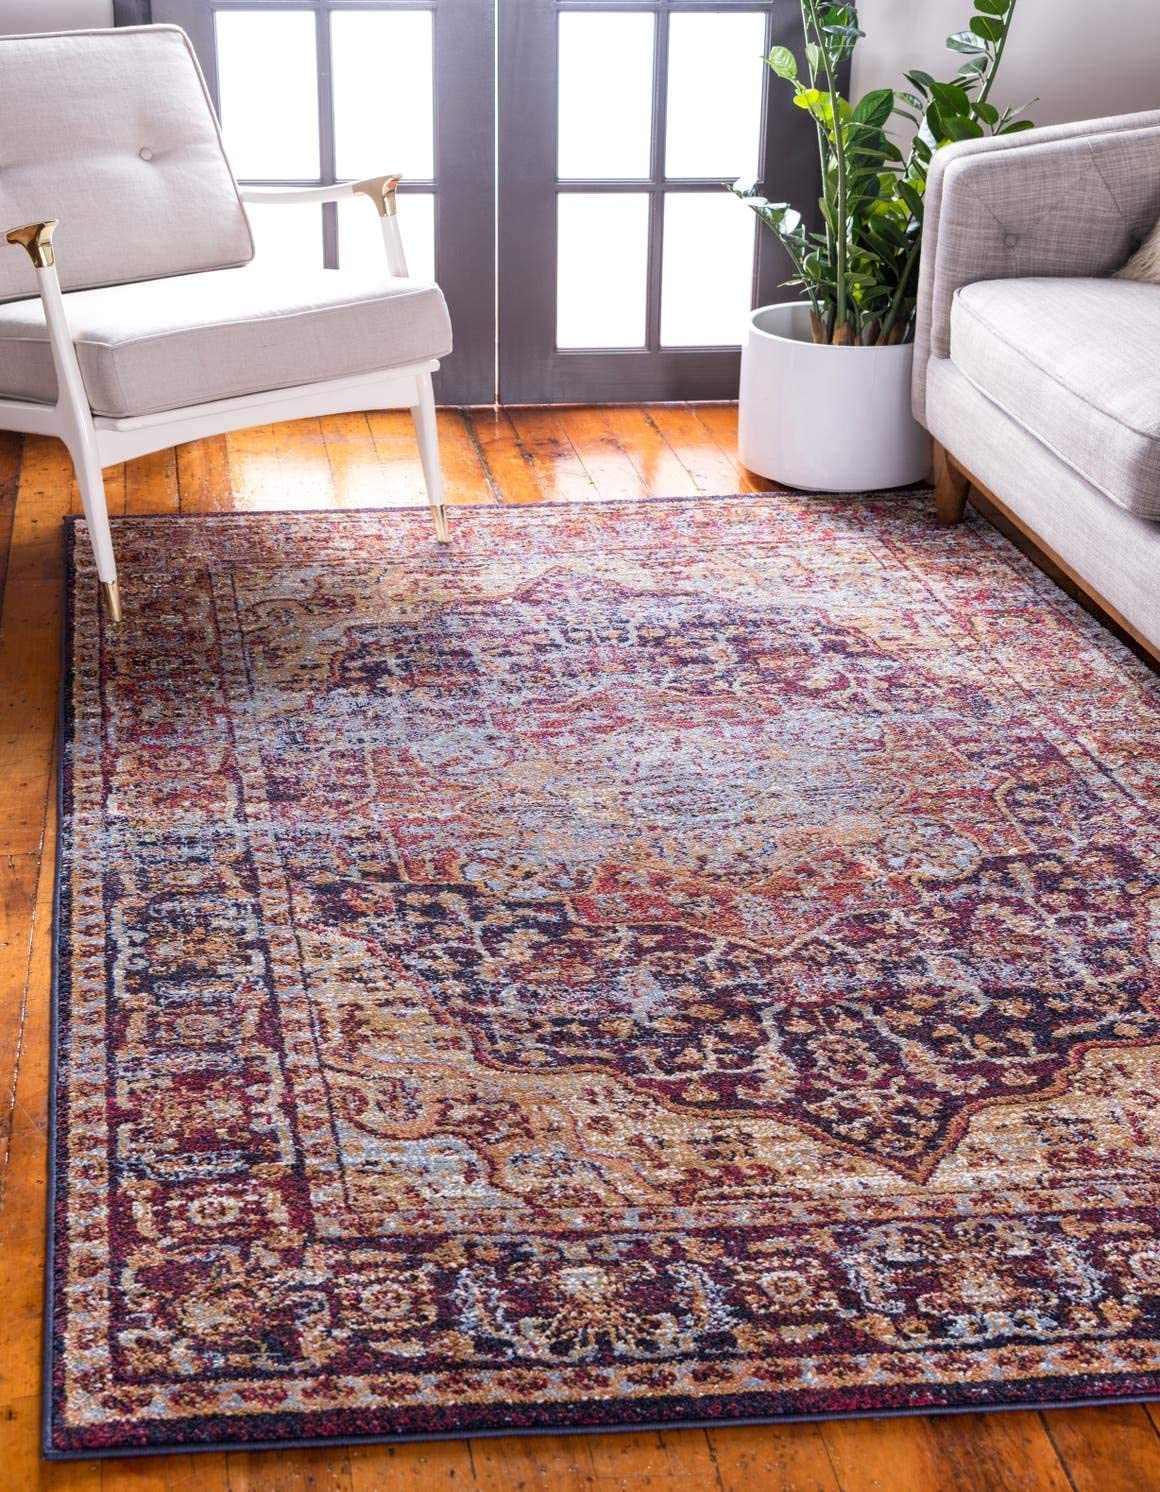 Unique Loom Augustus Collection Boho Traditional Vintage Rust Red Area Rug 7 0 x 10 0